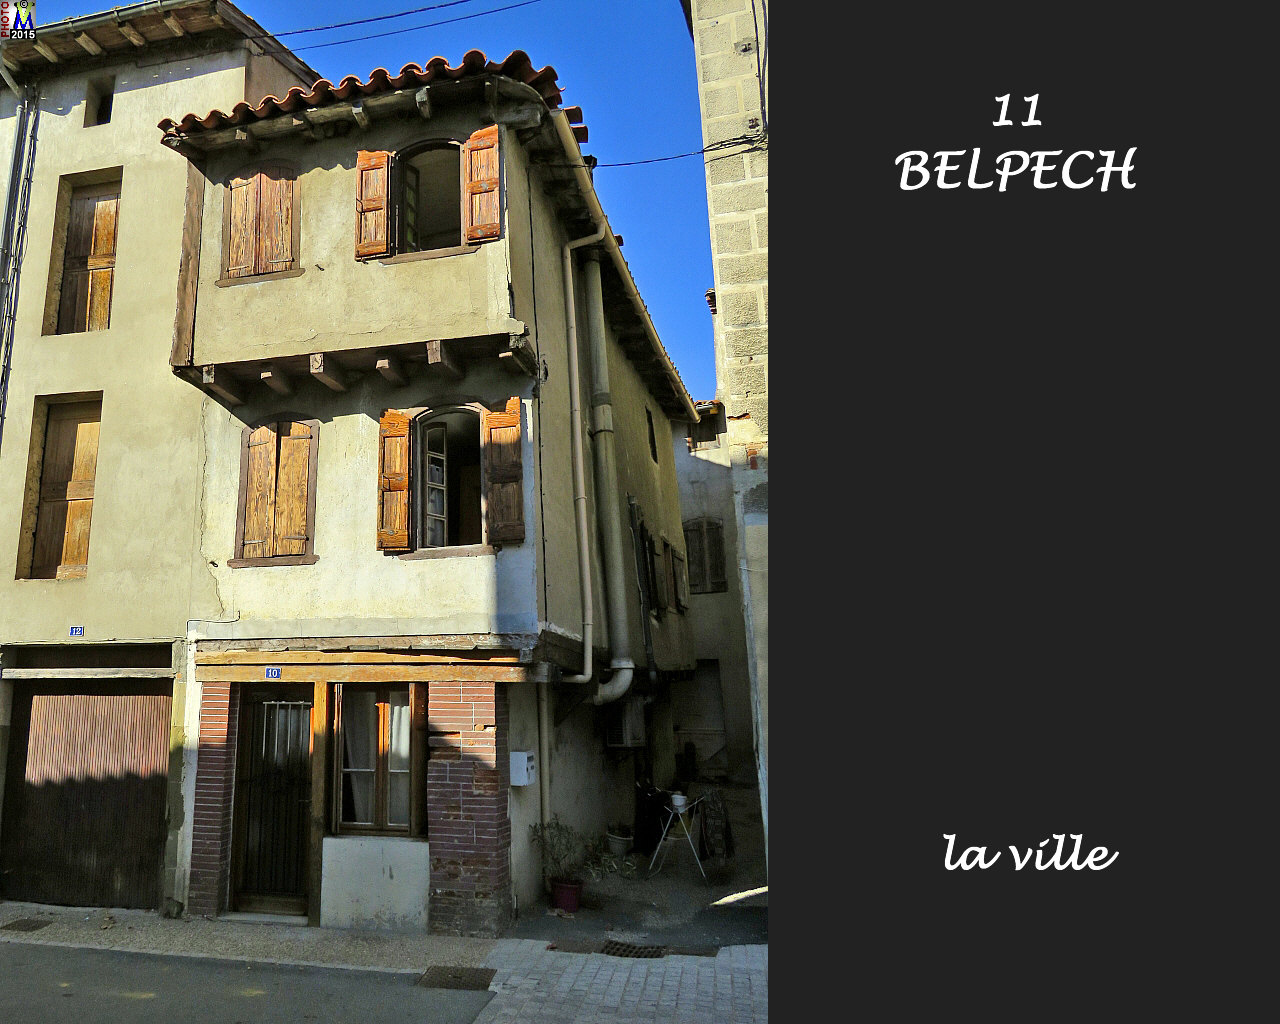 aude photos de la commune de belpech